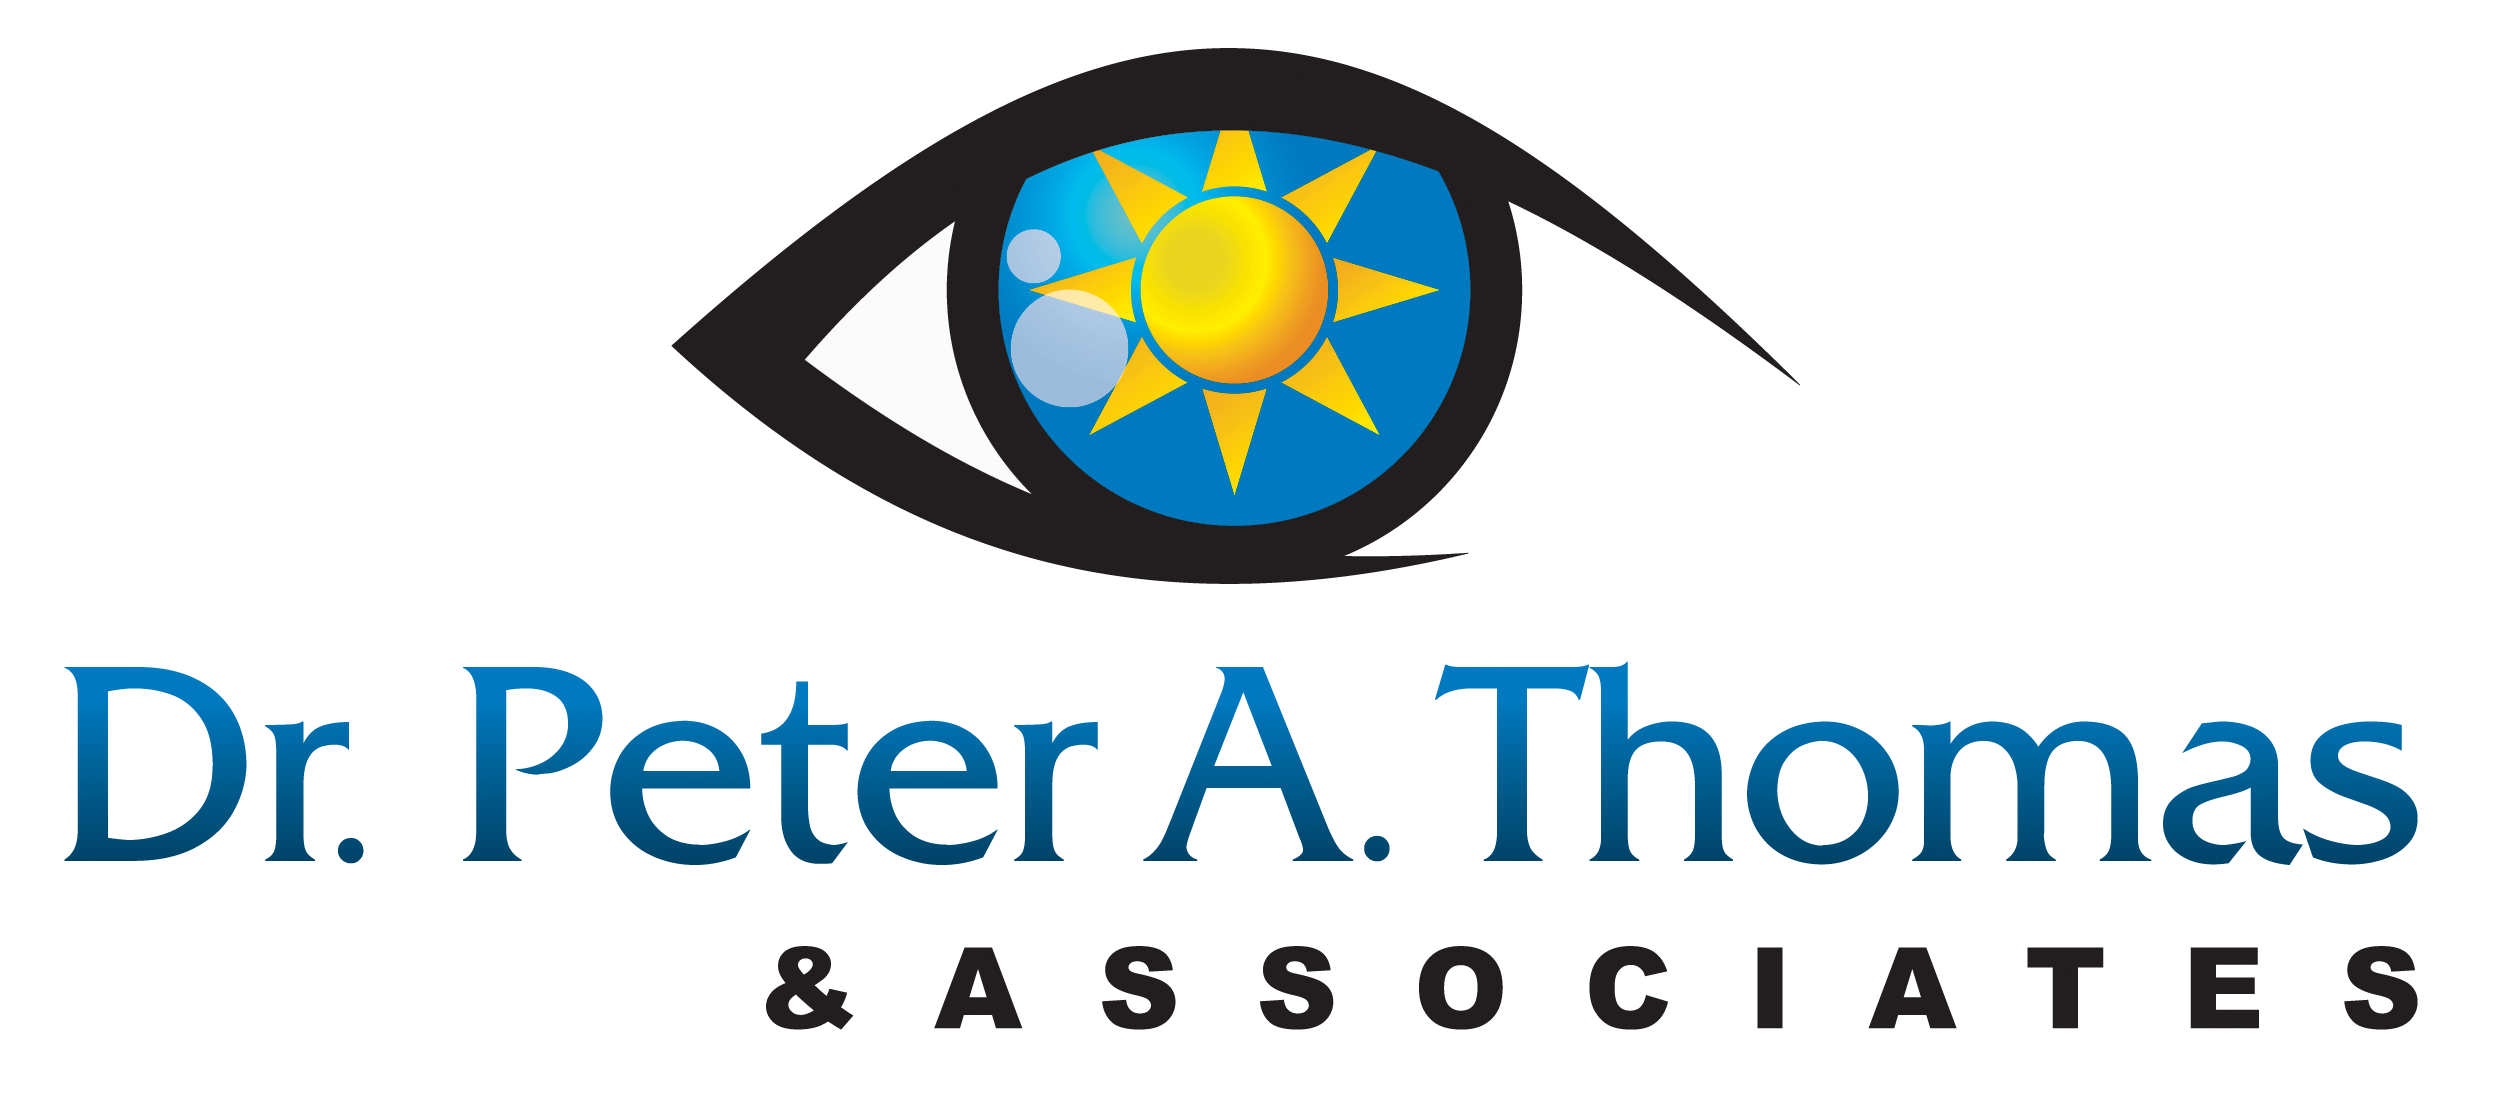 Dr. Peter A. Thomas & Associates, LLC